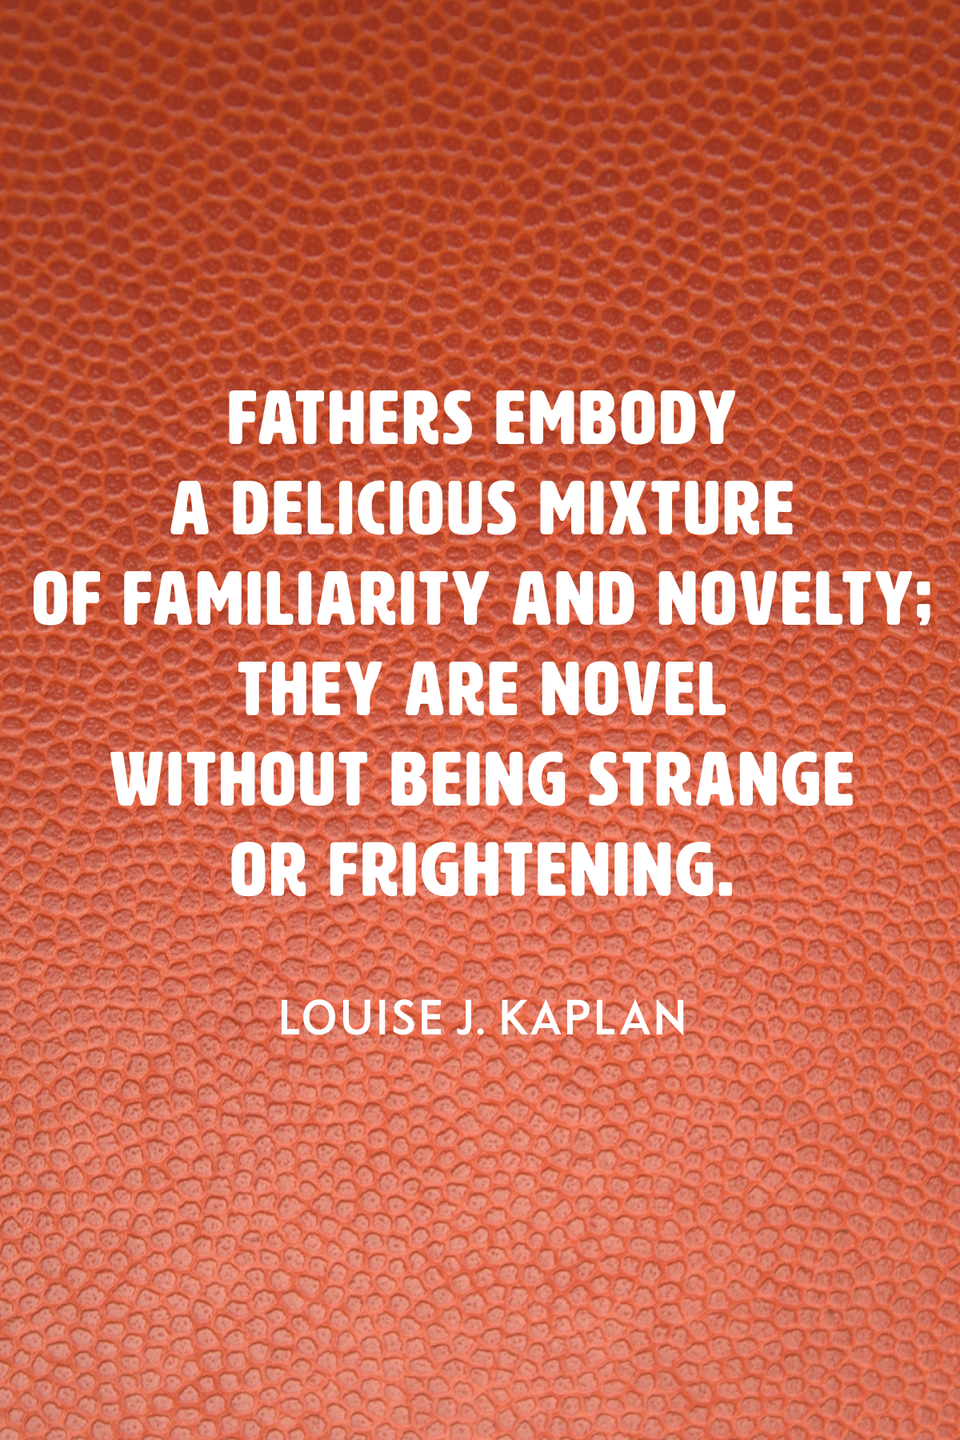 """<p>""""Fathers embody a delicious mixture of familiarity and novelty; they are novel without being strange or frightening,"""" the psychologist wrote in her 1991 book <em><a href=""""https://www.amazon.com/Female-Perversions-Louise-Kaplan/dp/0385262345?tag=syn-yahoo-20&ascsubtag=%5Bartid%7C2139.g.32925371%5Bsrc%7Cyahoo-us"""" rel=""""nofollow noopener"""" target=""""_blank"""" data-ylk=""""slk:Female Perversions"""" class=""""link rapid-noclick-resp"""">Female Perversions</a></em>. </p>"""